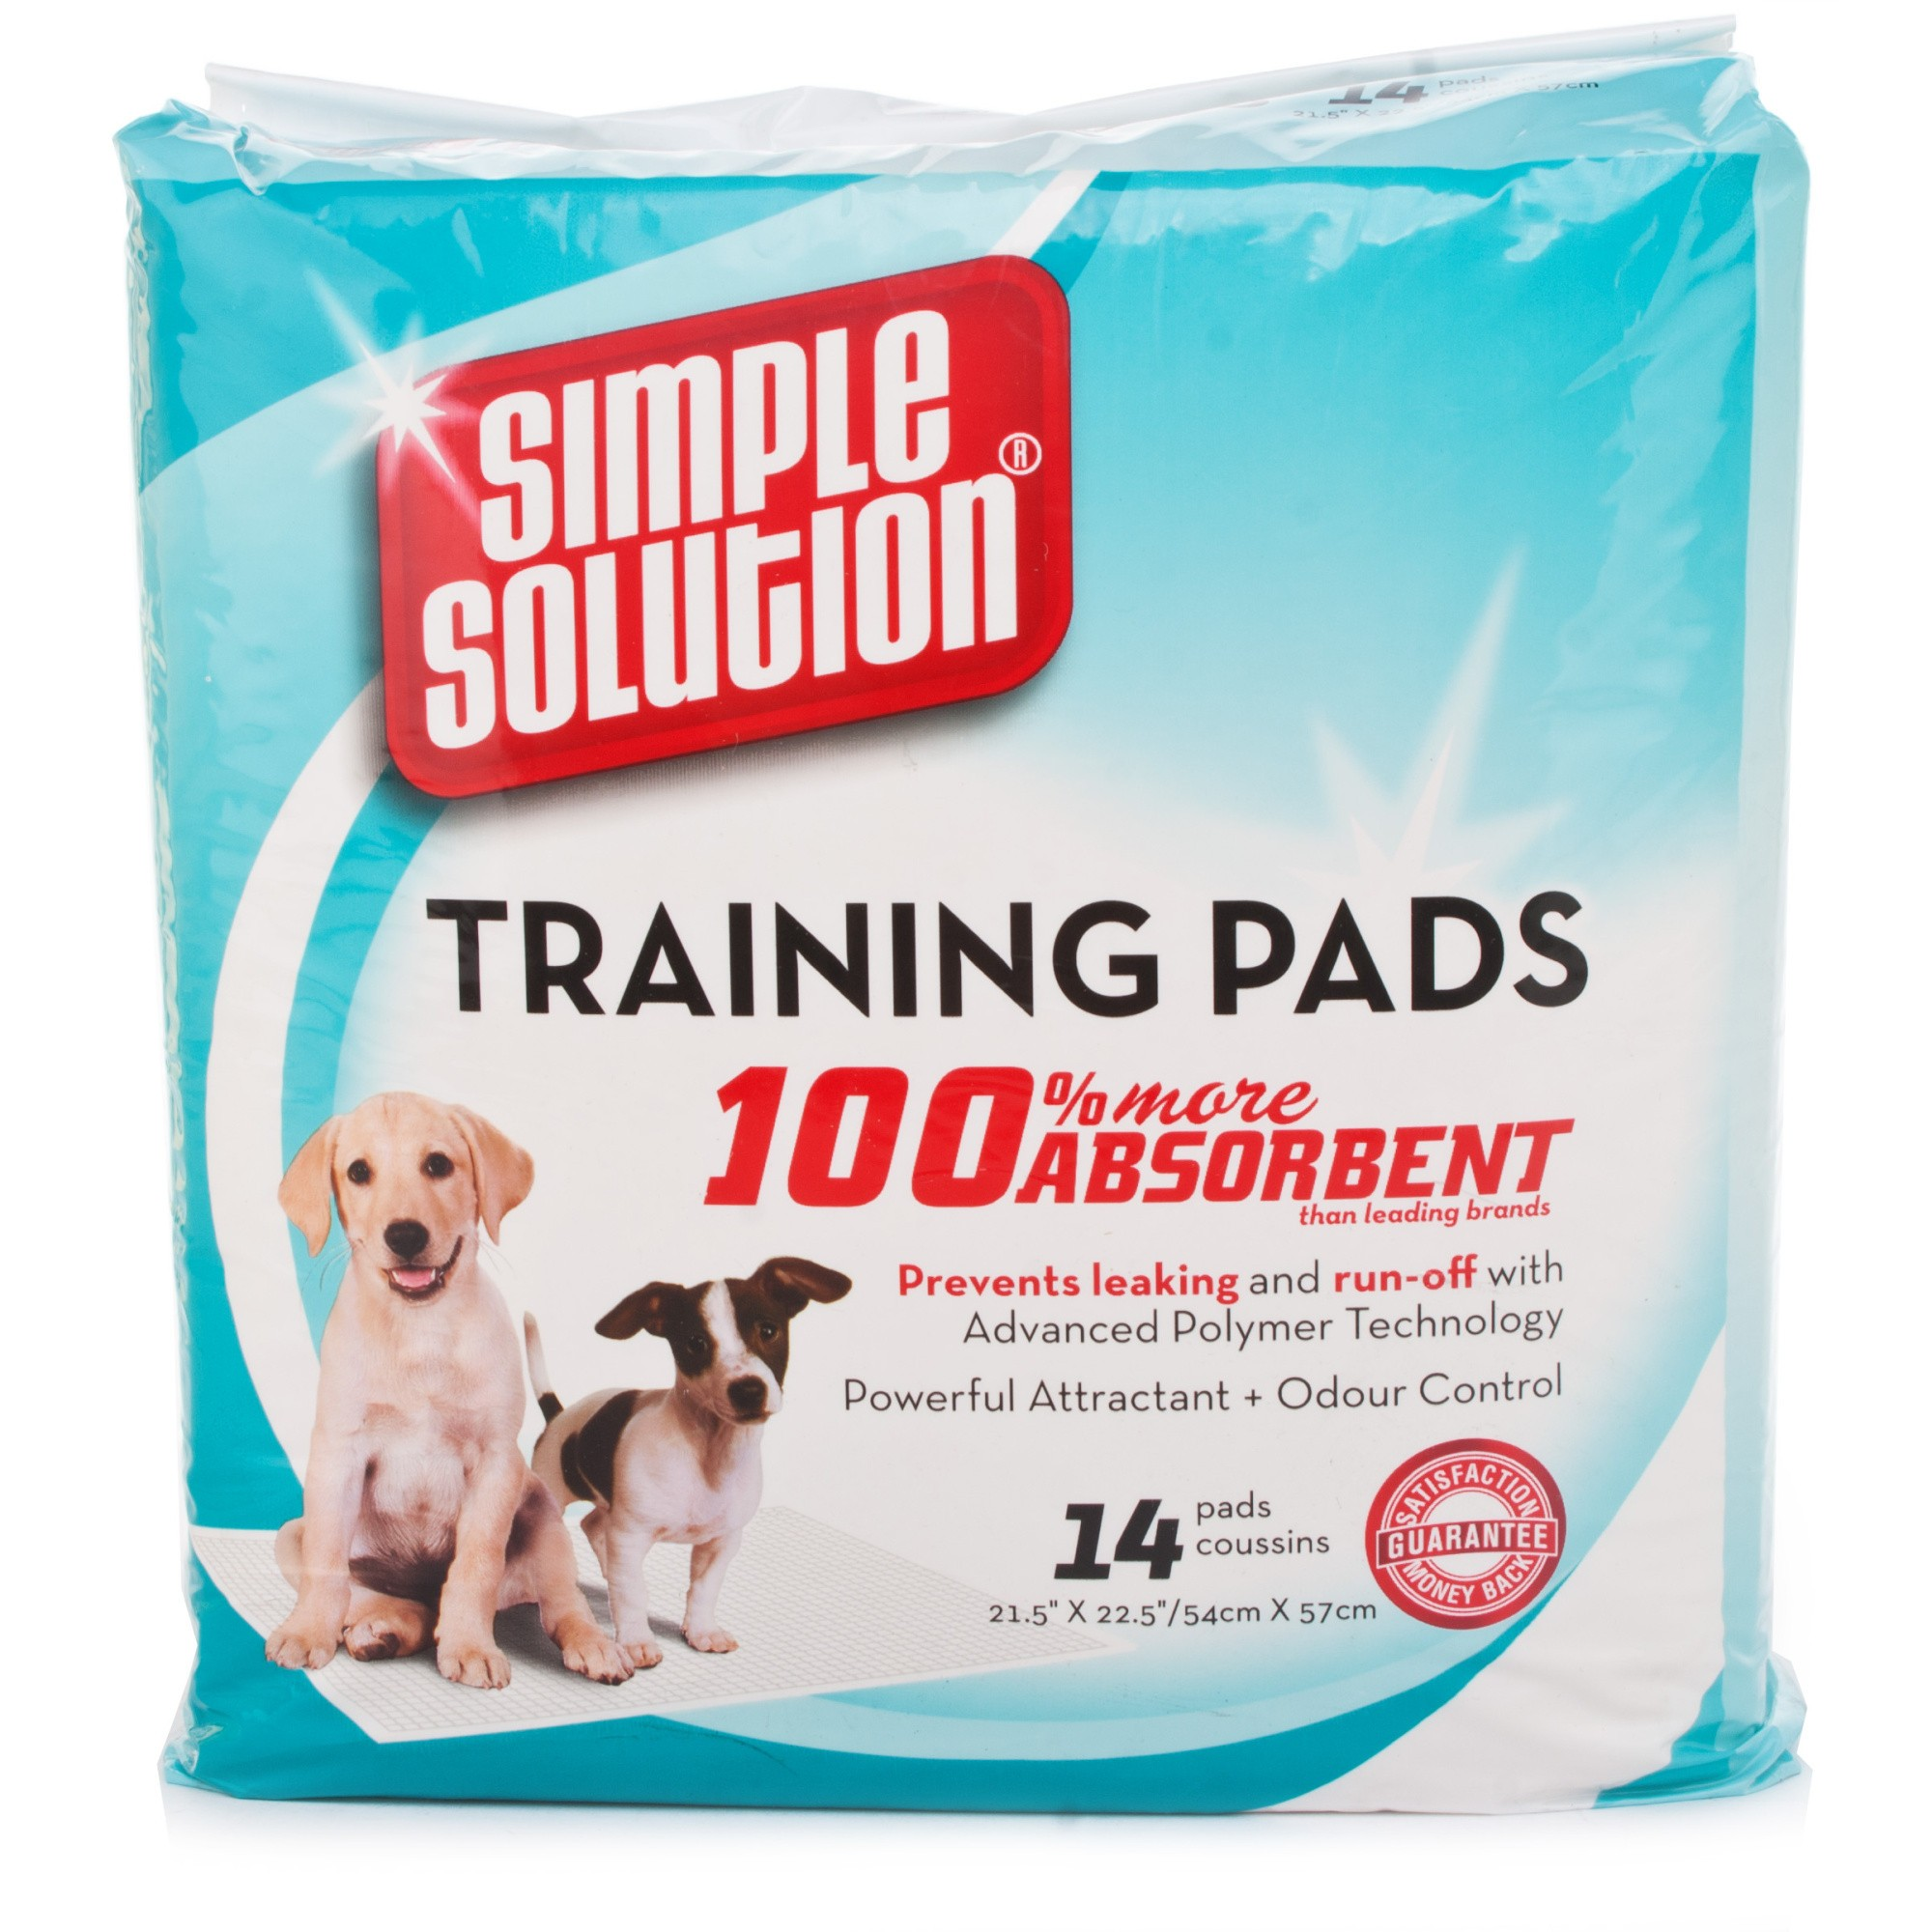 Simple Solution Puppy Training Pads 14 Pack